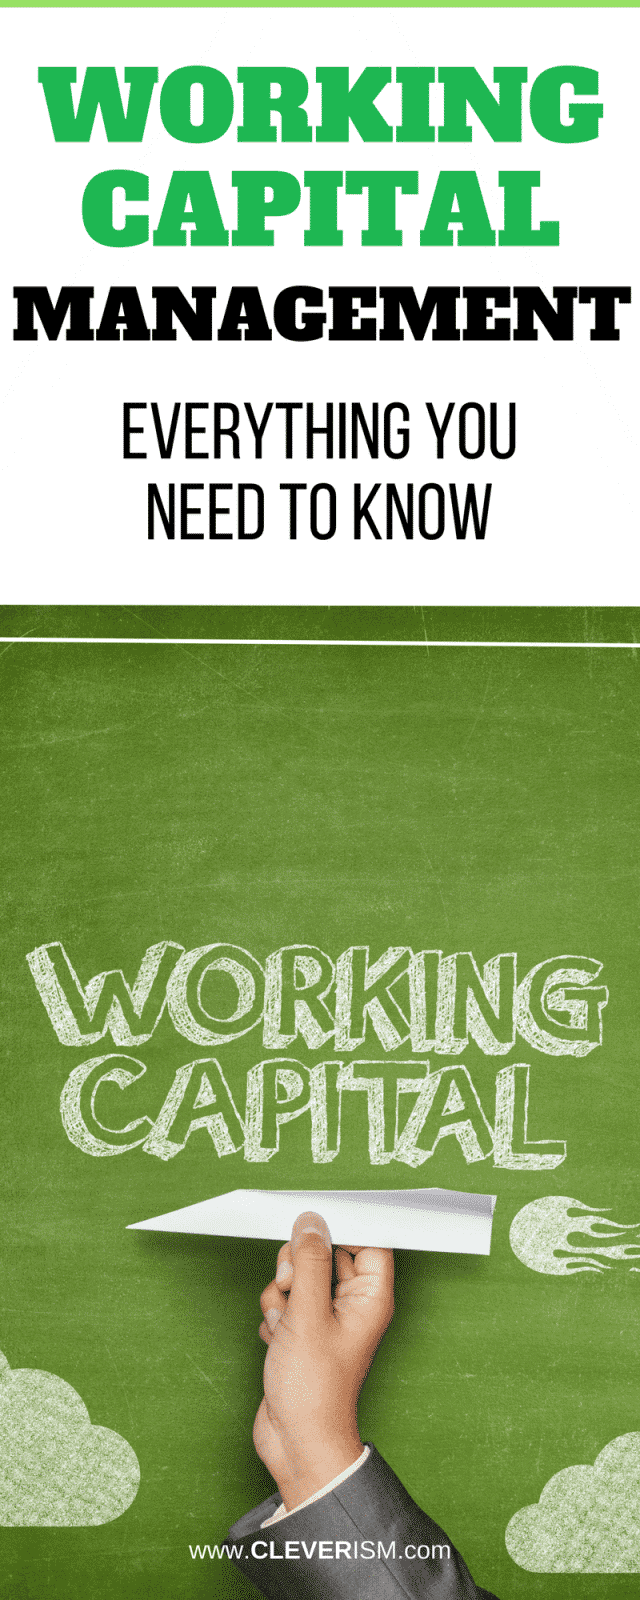 the significance of working capital management In all industries, and especially in retail jewelry, efficient working capital is essential working capital is defined as the difference between current assets and current liabilitiesone measurement of a company's health is the current ratio, or ratio of current assets to current liabilities.